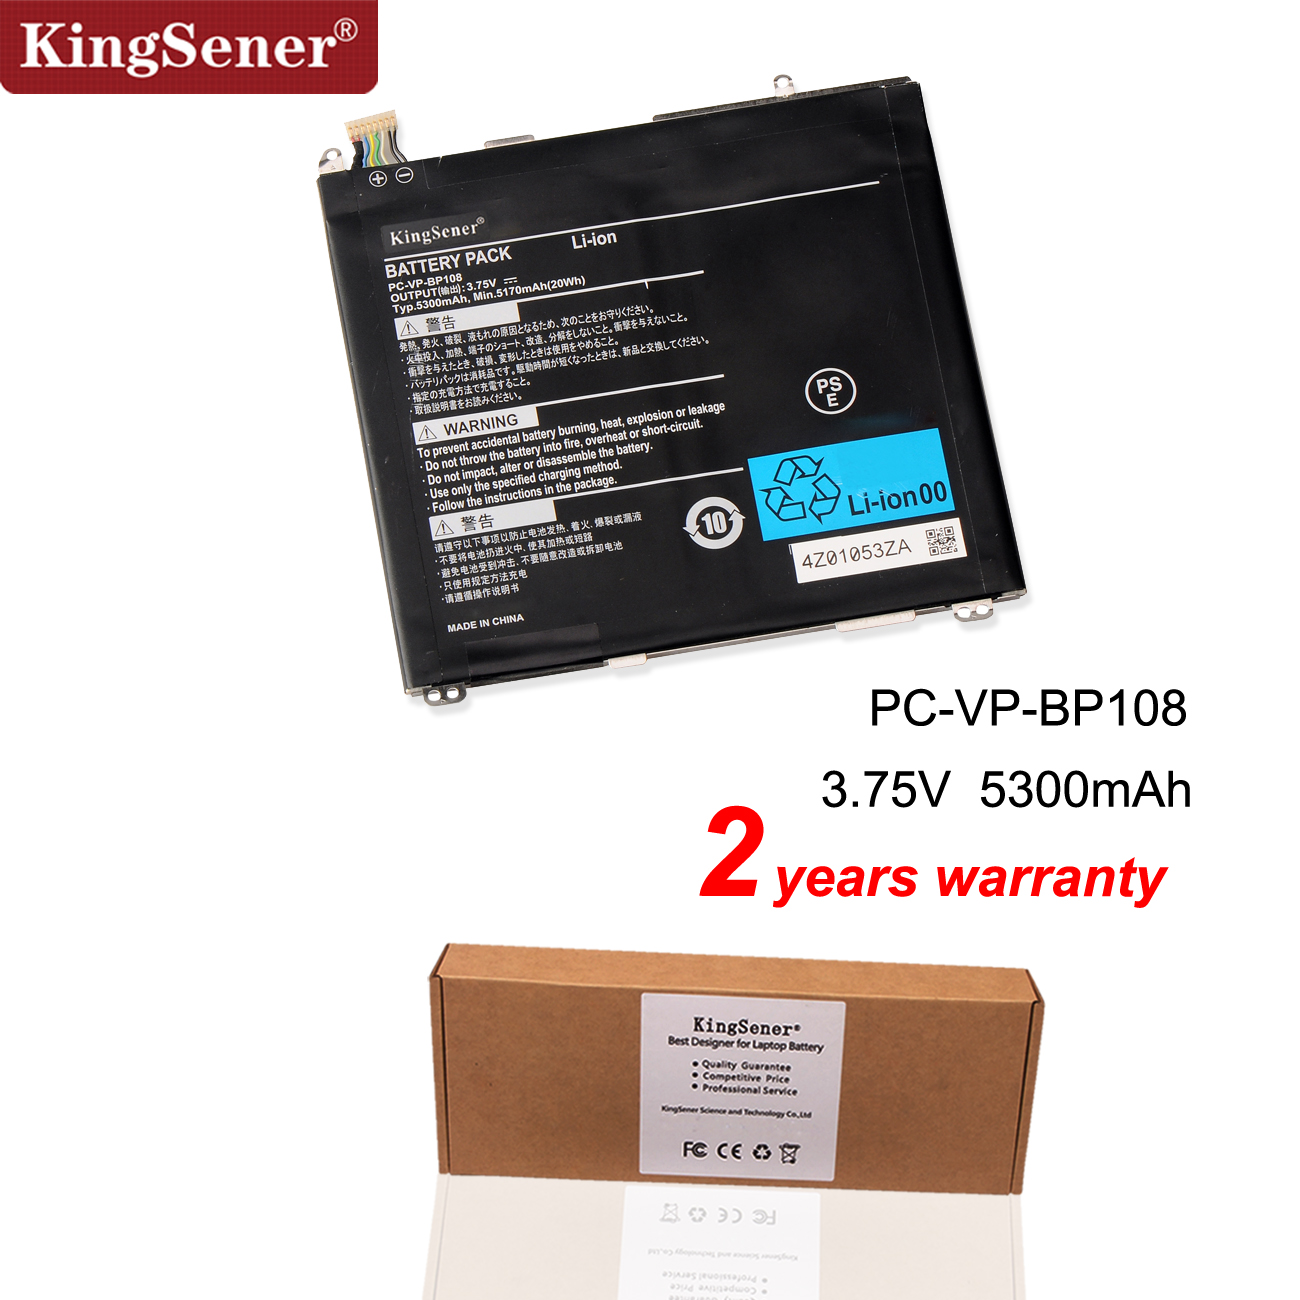 Kingsener Laptop Battery For NEC PC-VP-BP108 3.75V 5300mAh/20WH